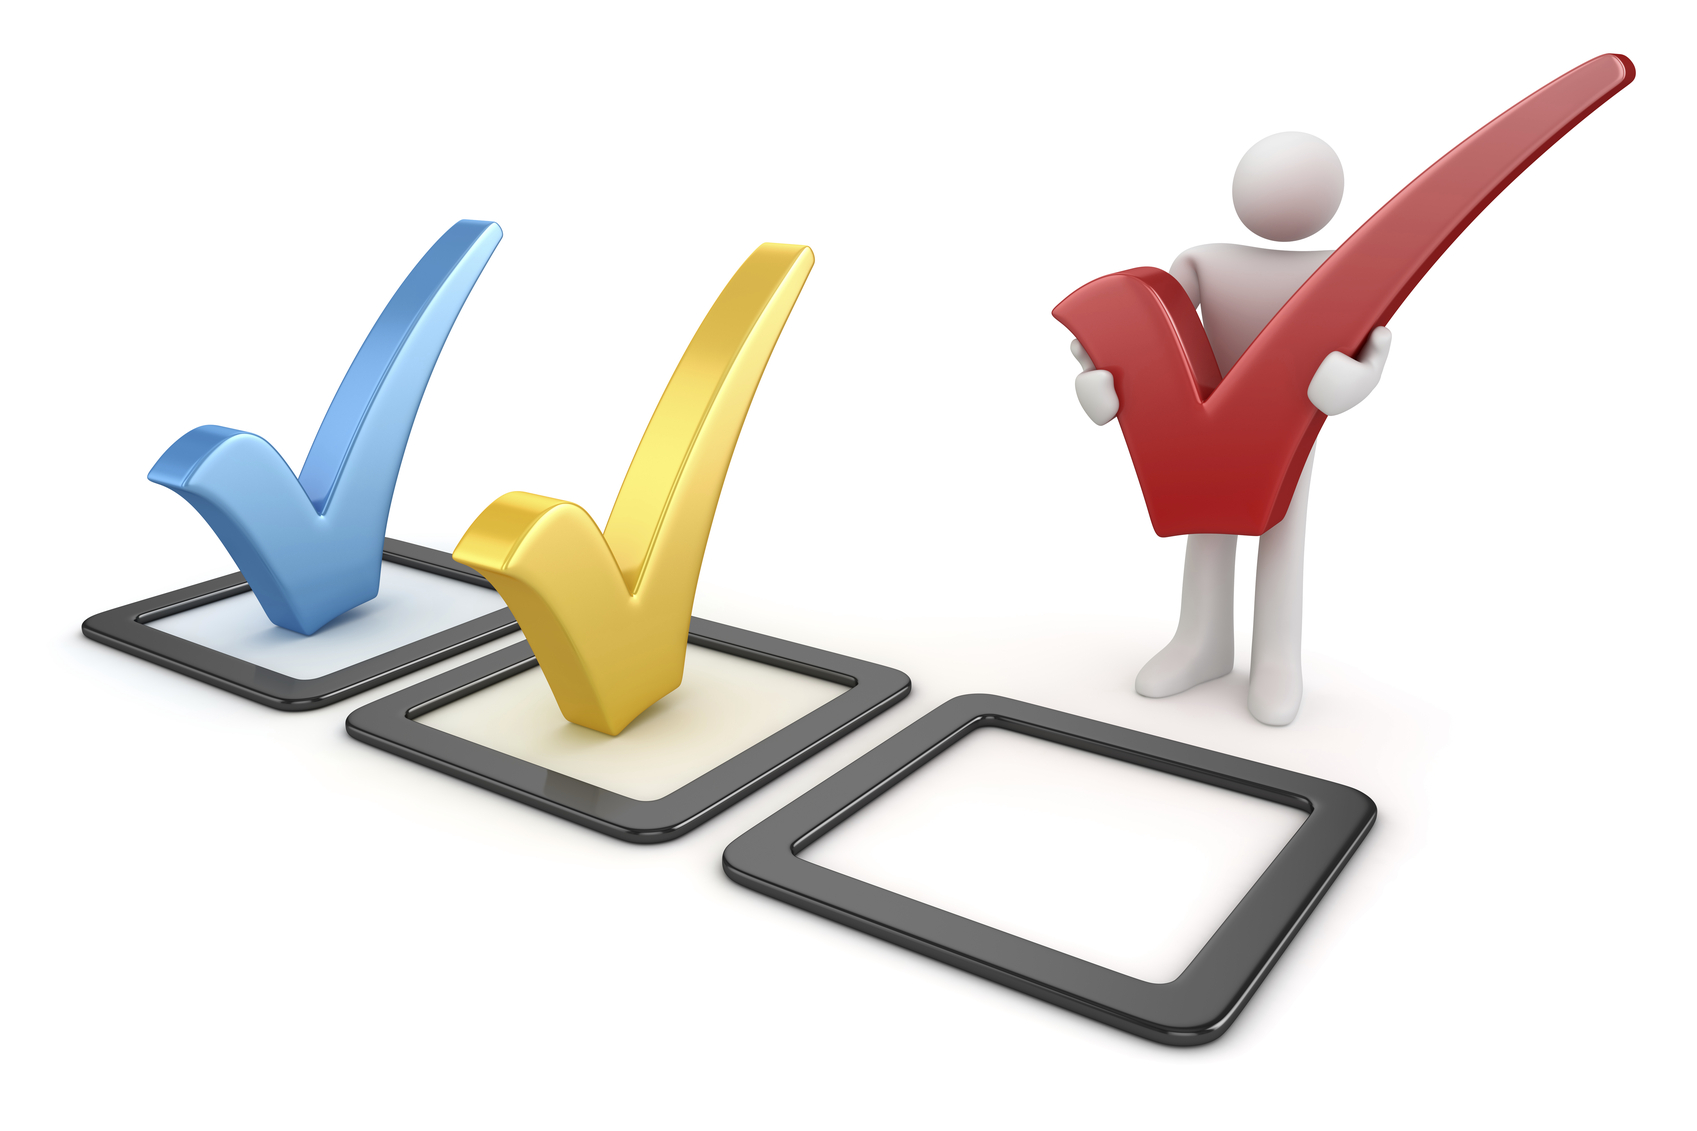 Self Assessment Essential To Success In School And Work Ed Imagine Assessment stock vectors, clipart and illustrations. http edimagine com blog self assessment key to success in school and work